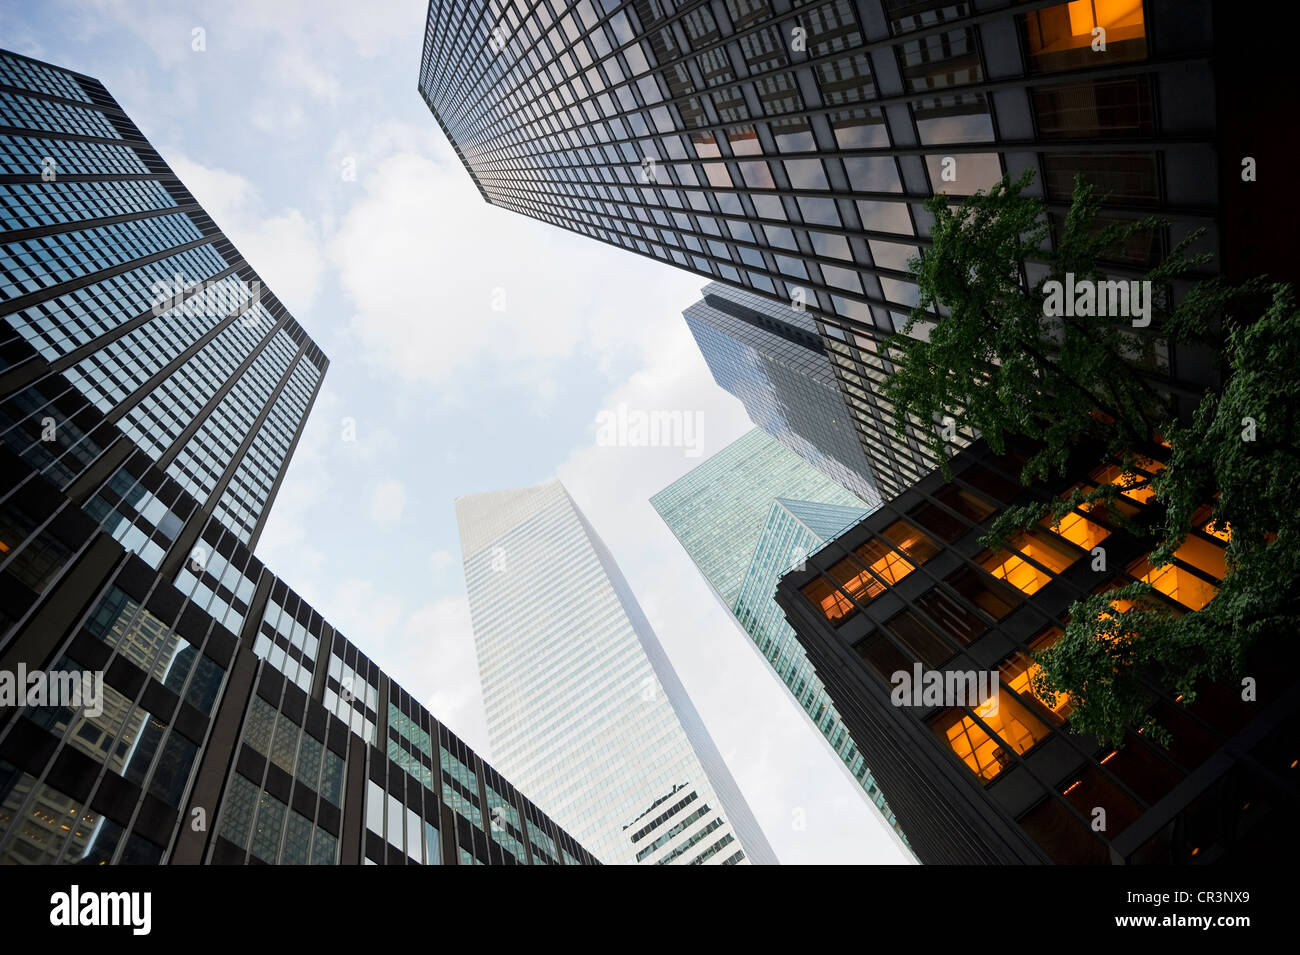 Edifici ad alta, Park Avenue, Manhattan, New York, USA, America Immagini Stock